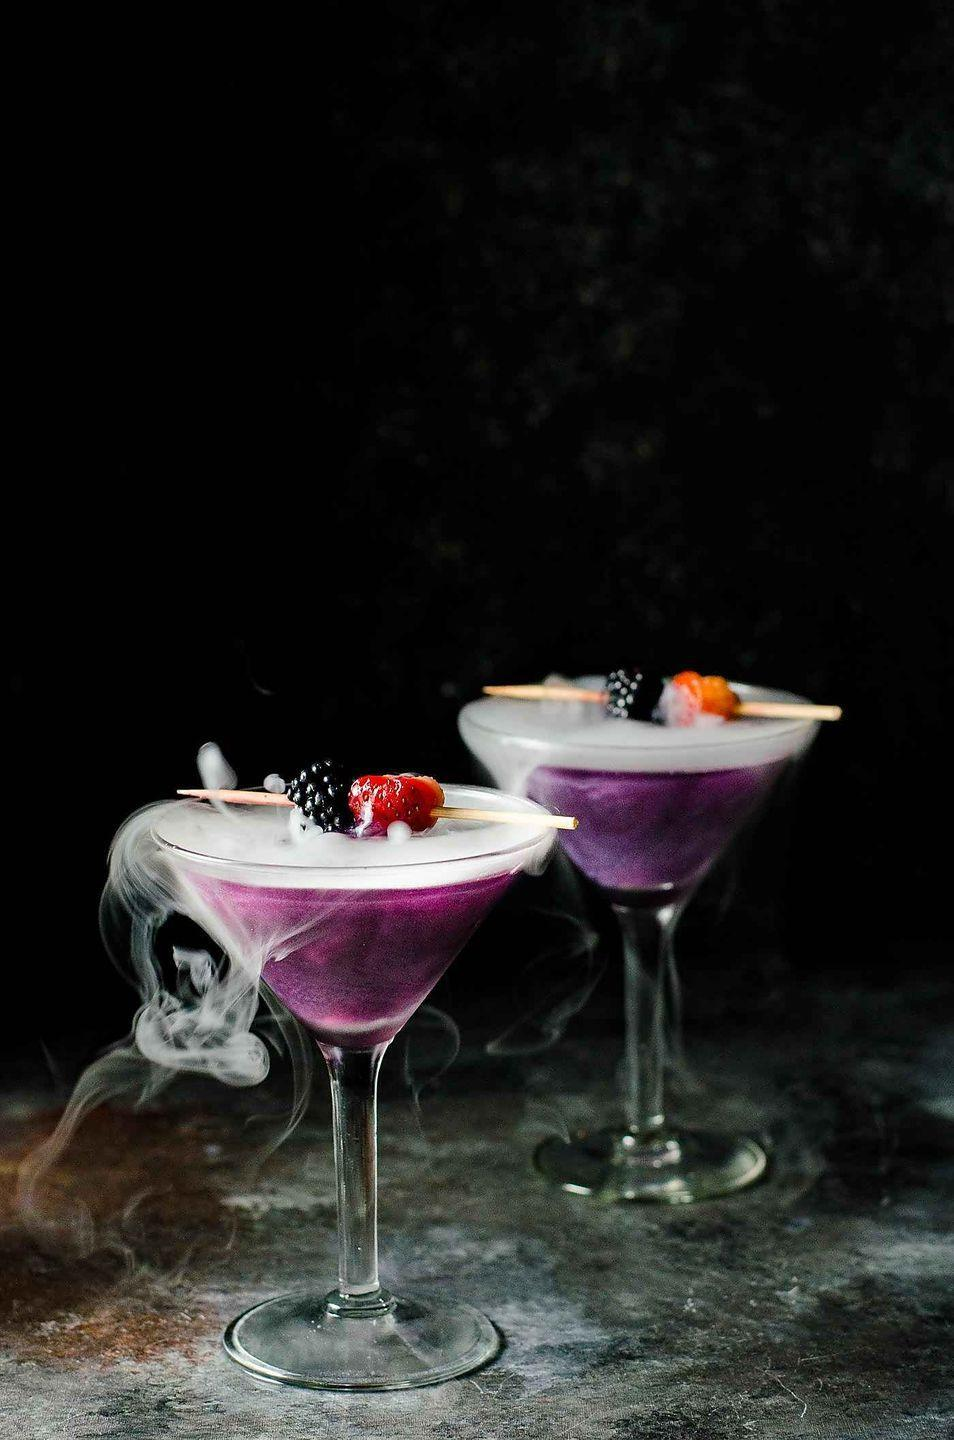 """<p>Pair this magical blackberry martini with a bag of Halloween chocolates and a <a href=""""https://www.thepioneerwoman.com/news-entertainment/g32578311/scary-halloween-movies/"""" rel=""""nofollow noopener"""" target=""""_blank"""" data-ylk=""""slk:scary movie"""" class=""""link rapid-noclick-resp"""">scary movie</a> for a perfect night in. </p><p><strong>Get the recipe at <a href=""""https://www.theflavorbender.com/the-witchs-heart-halloween-cocktail/"""" rel=""""nofollow noopener"""" target=""""_blank"""" data-ylk=""""slk:The Flavor Bender"""" class=""""link rapid-noclick-resp"""">The Flavor Bender</a>. </strong></p><p><a class=""""link rapid-noclick-resp"""" href=""""https://go.redirectingat.com?id=74968X1596630&url=https%3A%2F%2Fwww.walmart.com%2Fsearch%2F%3Fquery%3Dmartini%2Bglasses&sref=https%3A%2F%2Fwww.thepioneerwoman.com%2Fholidays-celebrations%2Fg36982659%2Fhalloween-drink-recipes%2F"""" rel=""""nofollow noopener"""" target=""""_blank"""" data-ylk=""""slk:SHOP MARTINI GLASSES"""">SHOP MARTINI GLASSES</a></p>"""